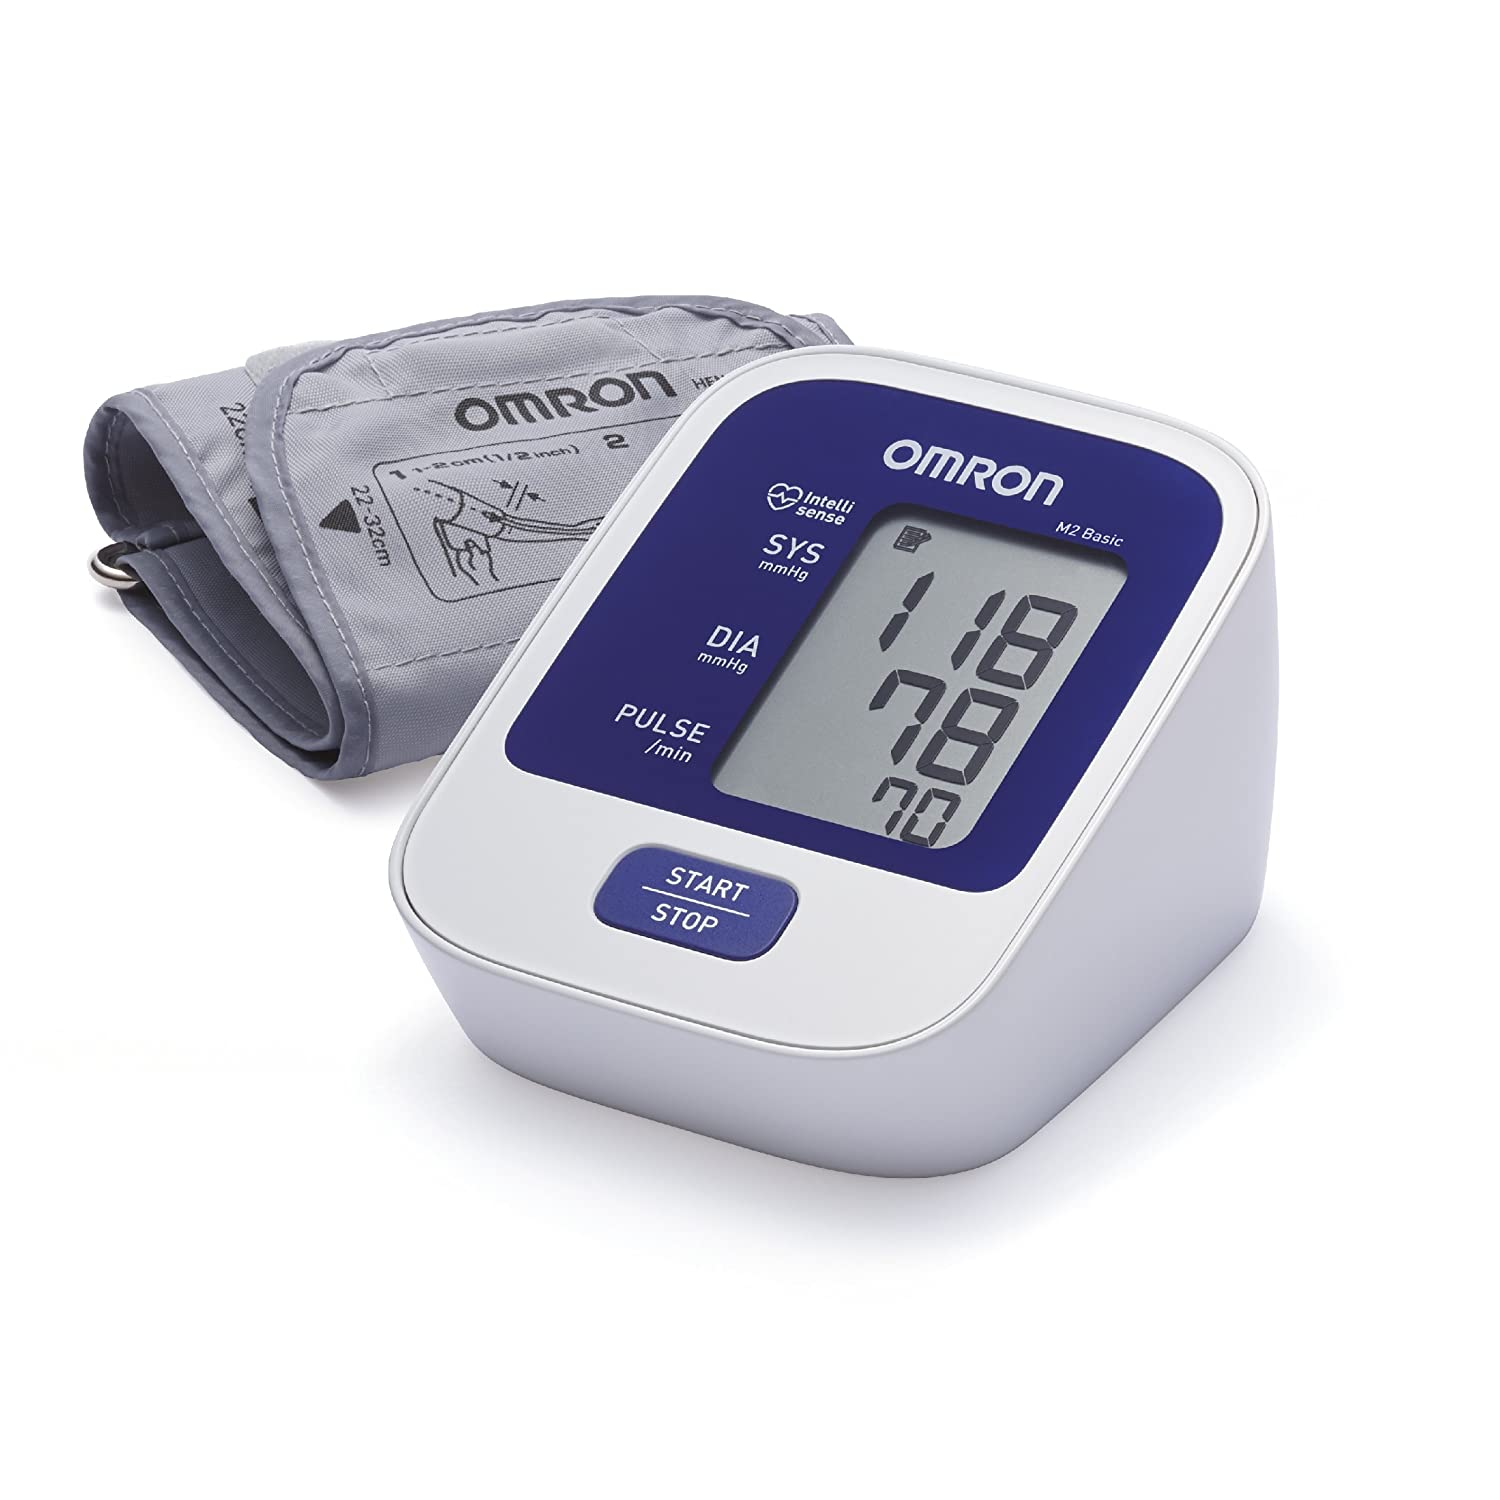 Omron M2 Basic Upper Arm Blood Pressure Monitor UK